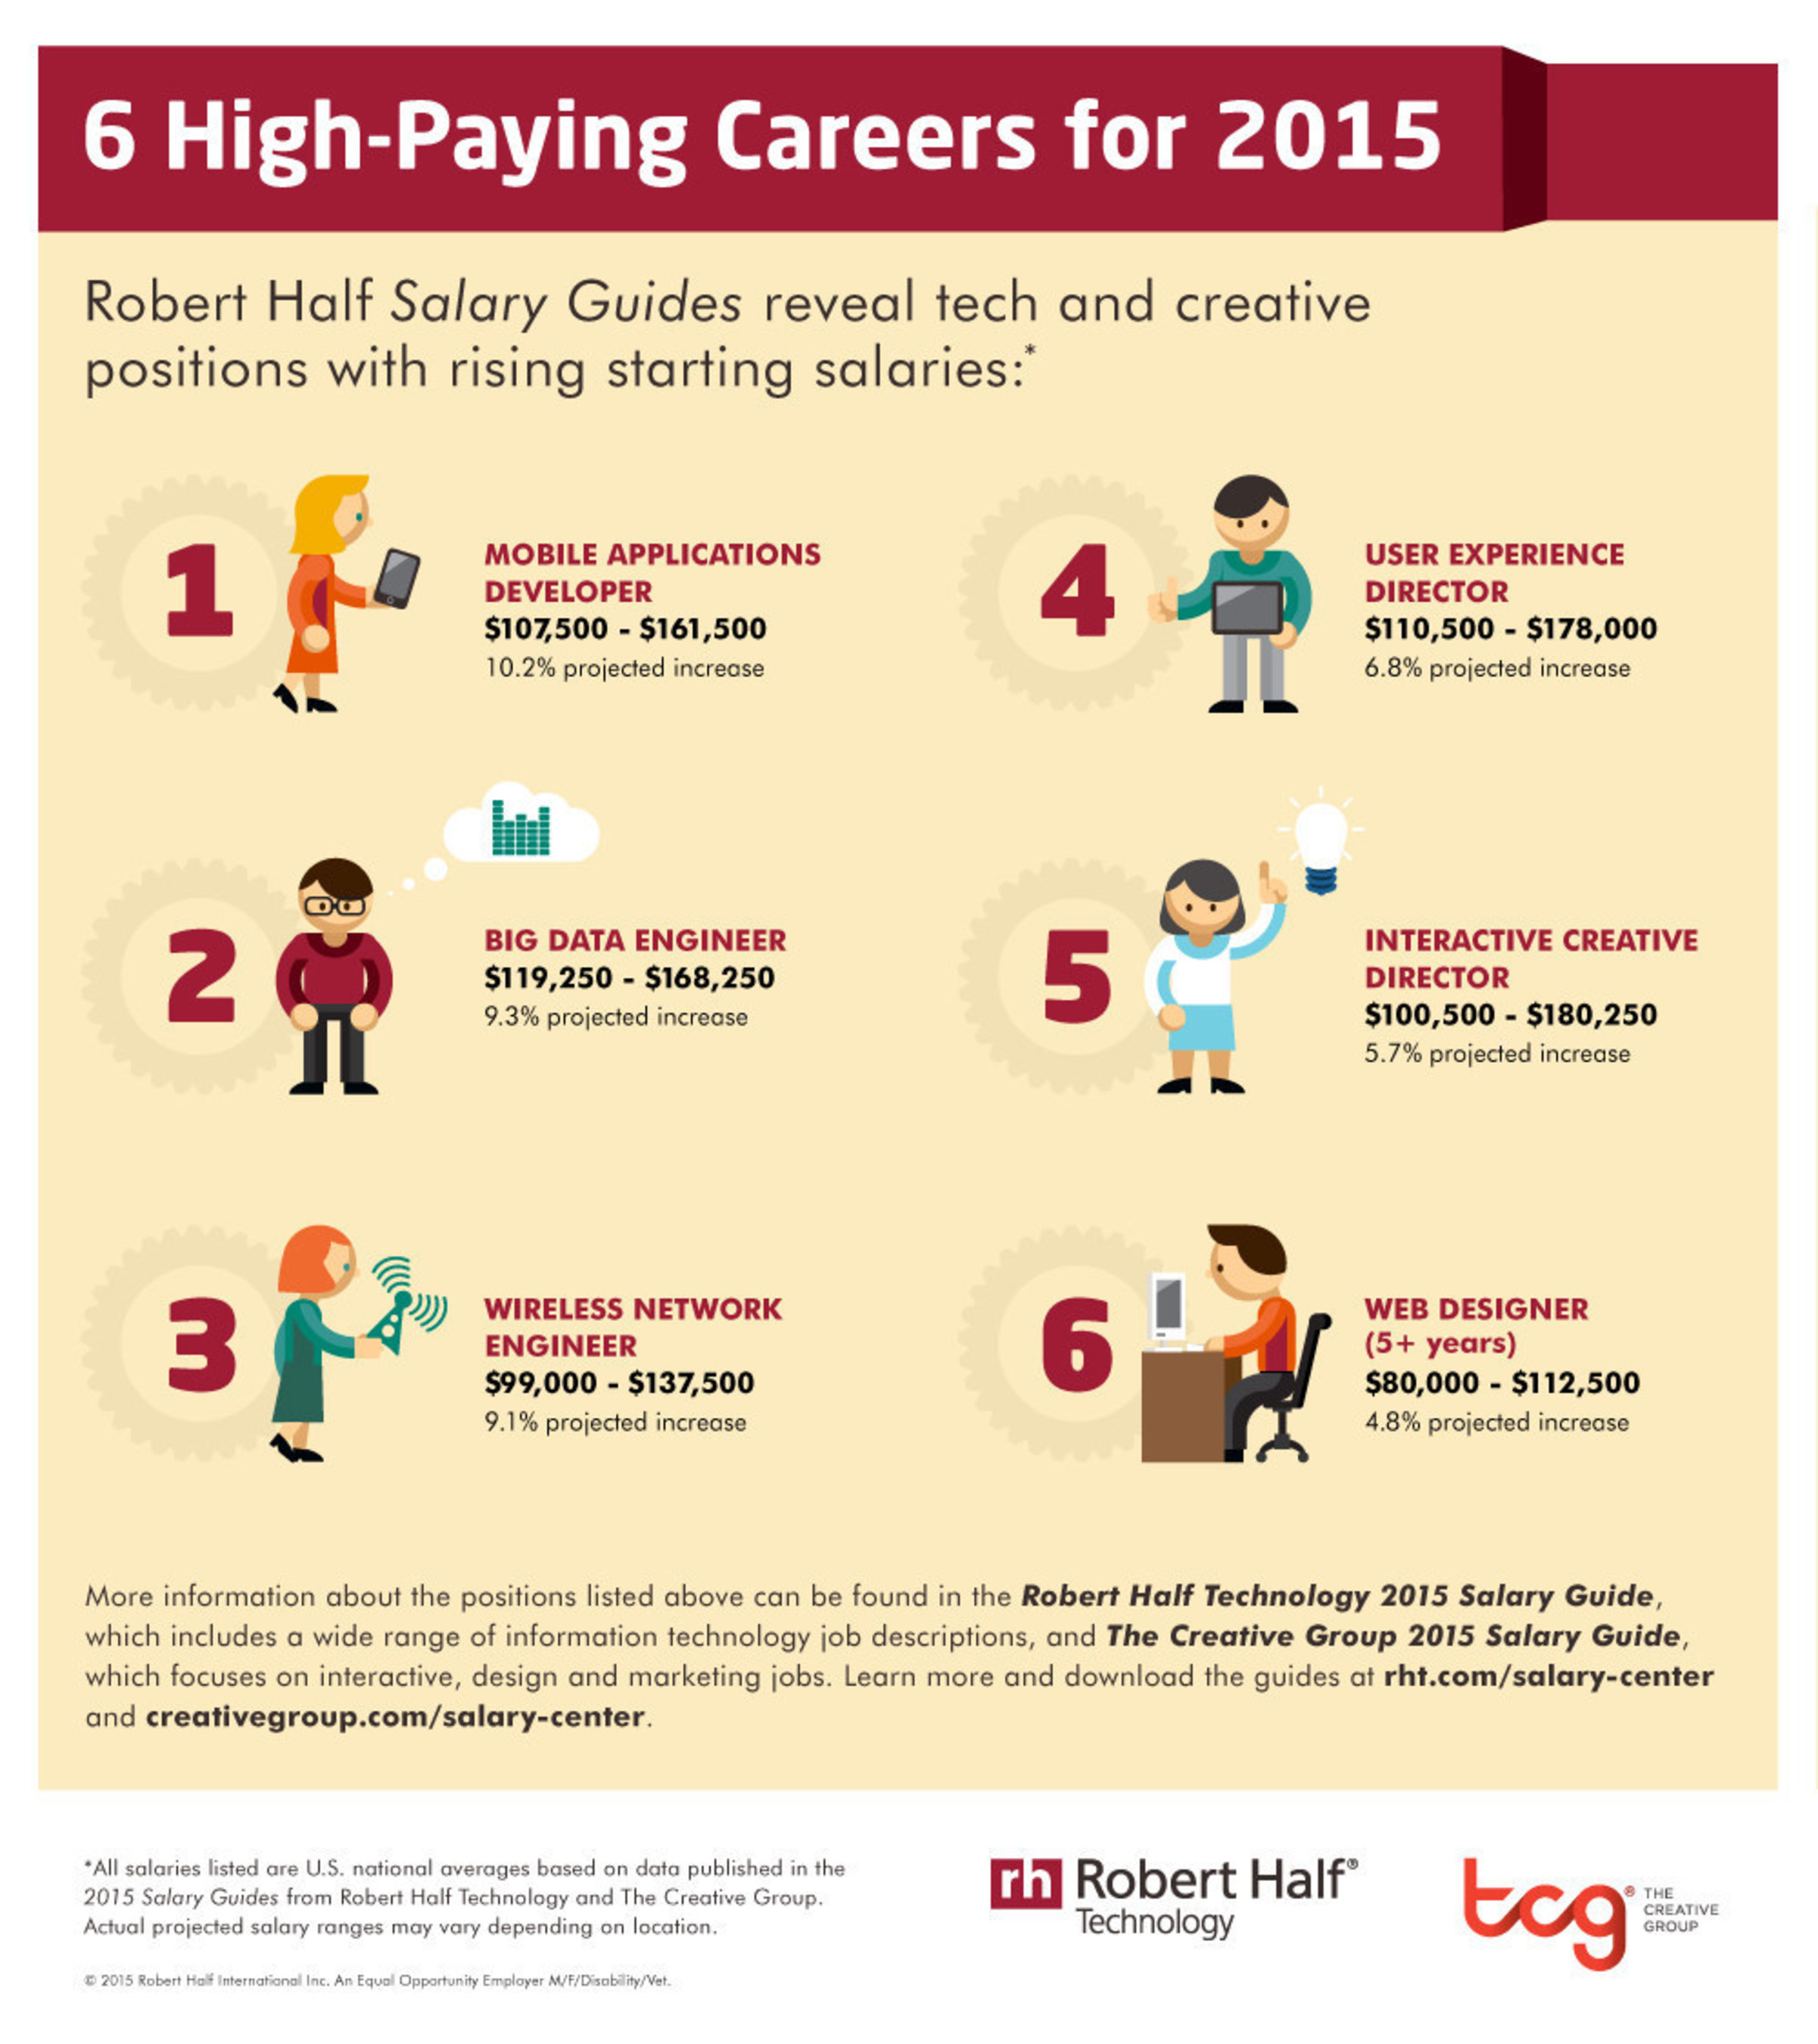 Salaries in the technology and creative fields are expected to continue their upward trend in 2015, according ...